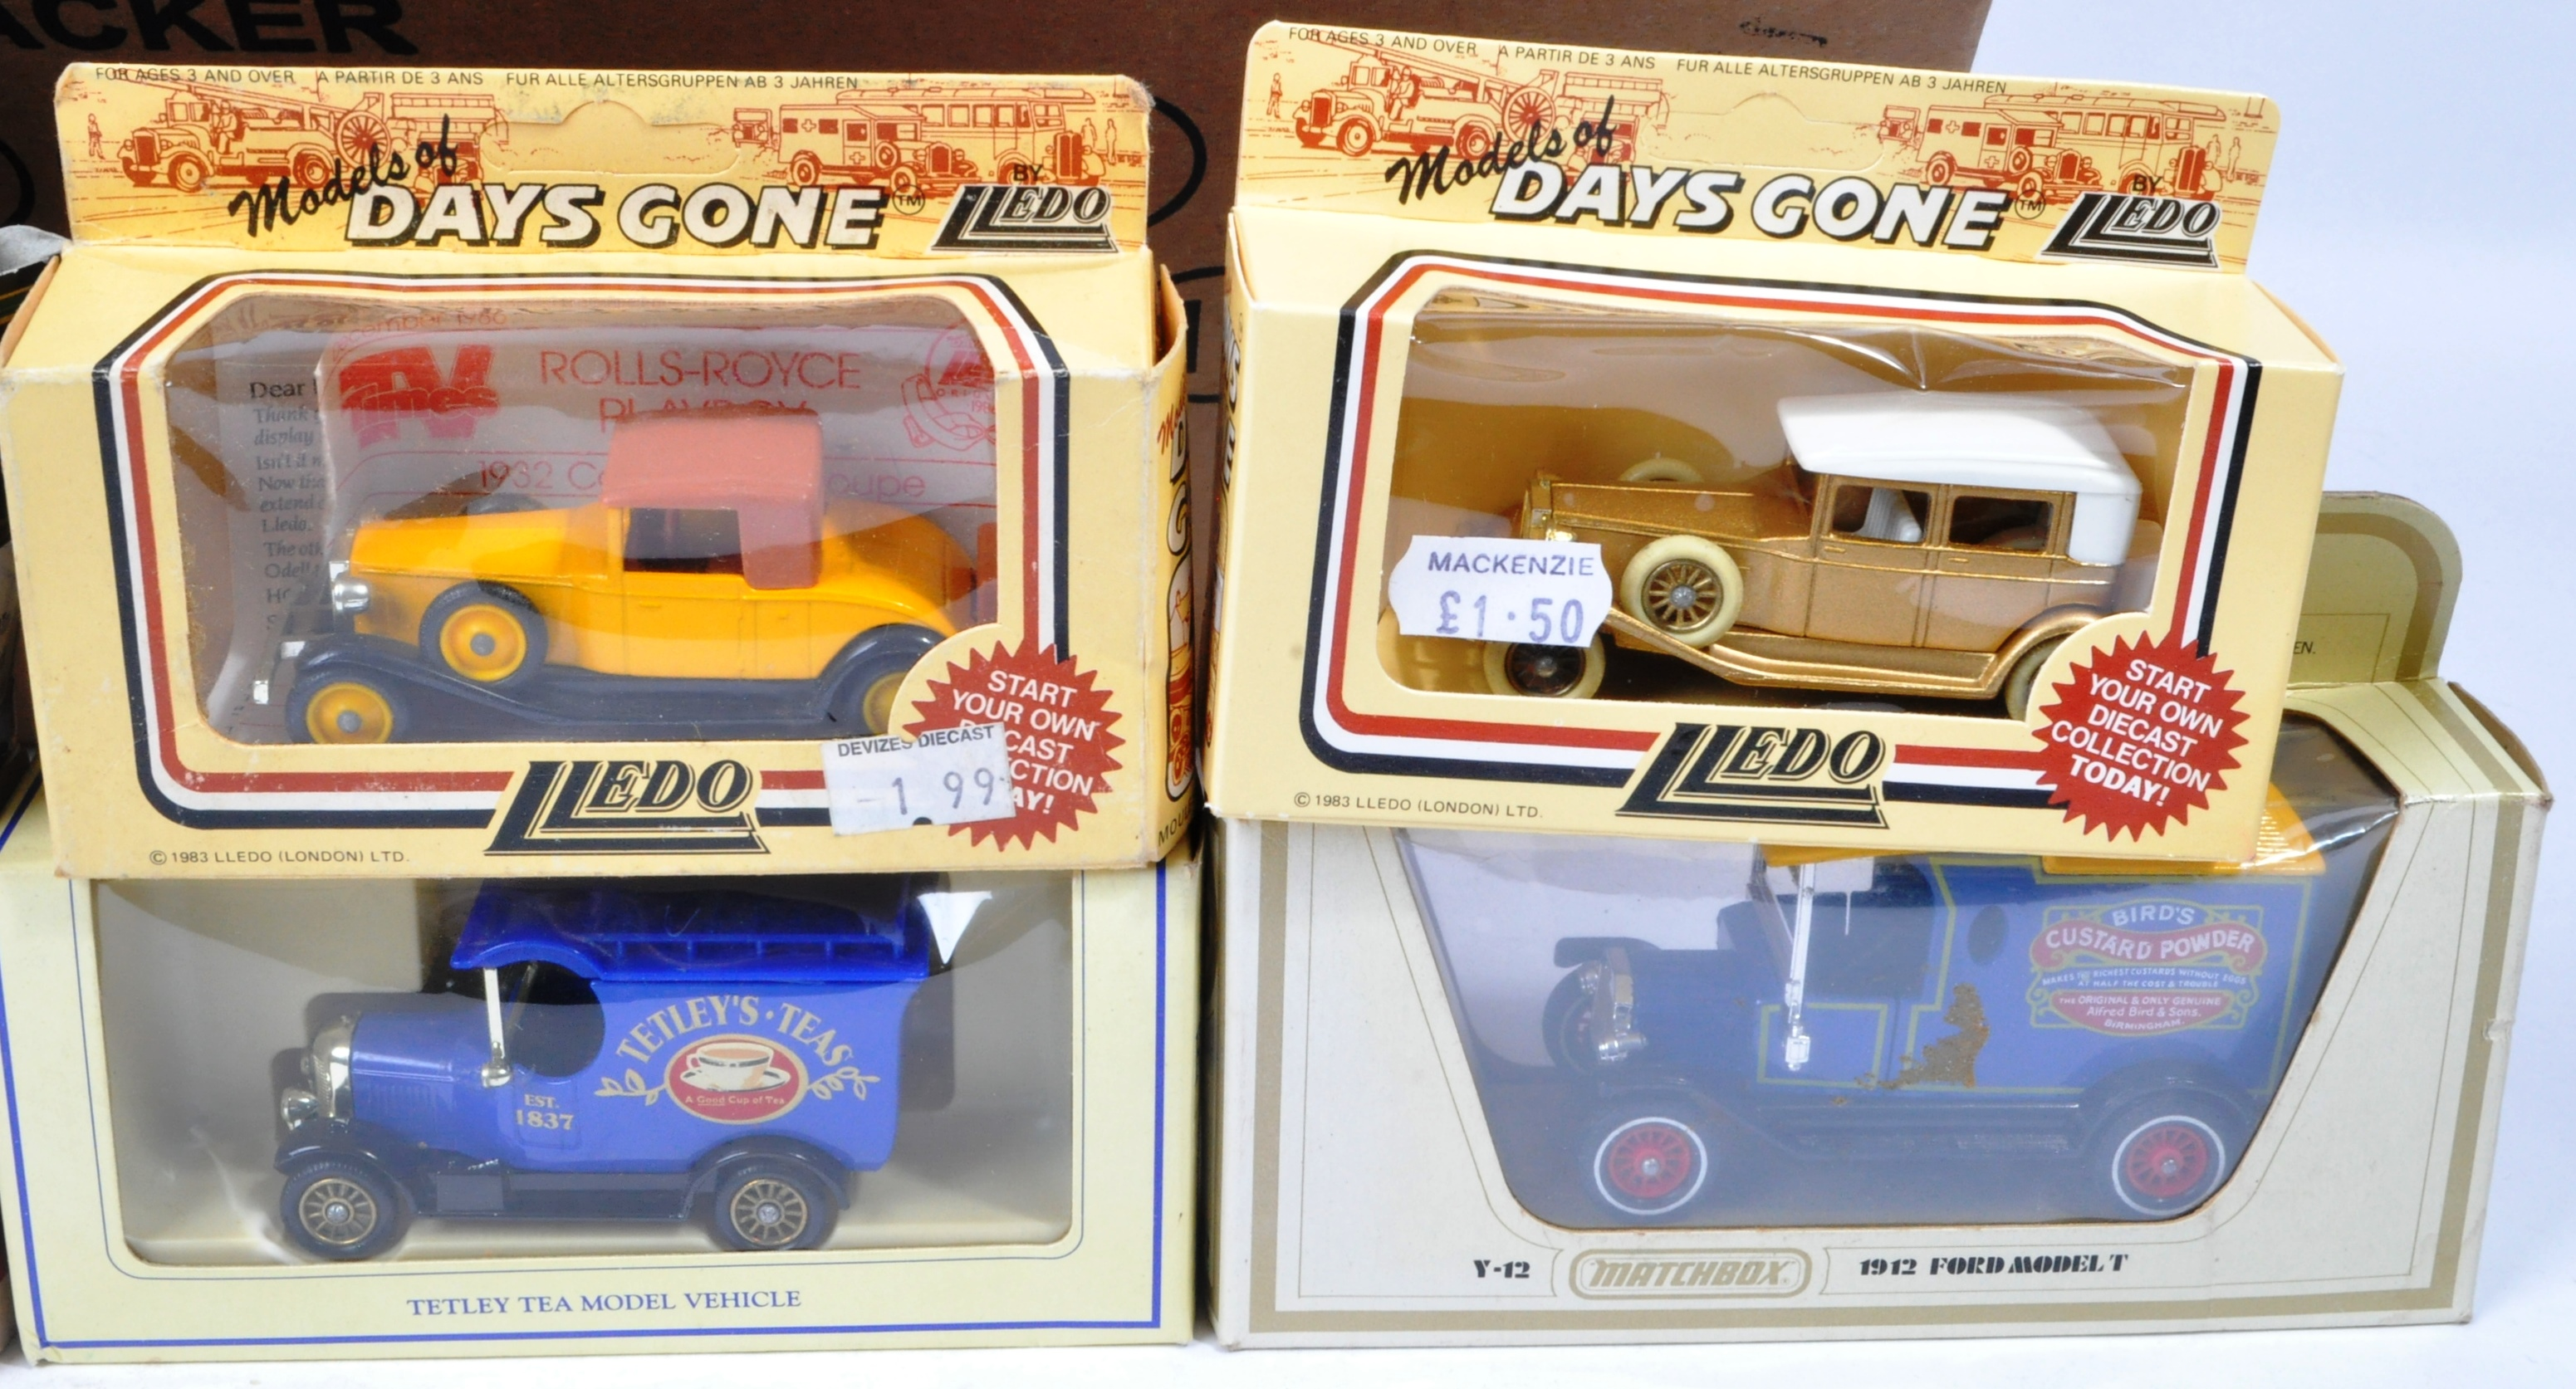 LARGE COLLECTION OF ASSORTED BOXED DIECAST - LLEDO, MATCHBOX - Image 3 of 4